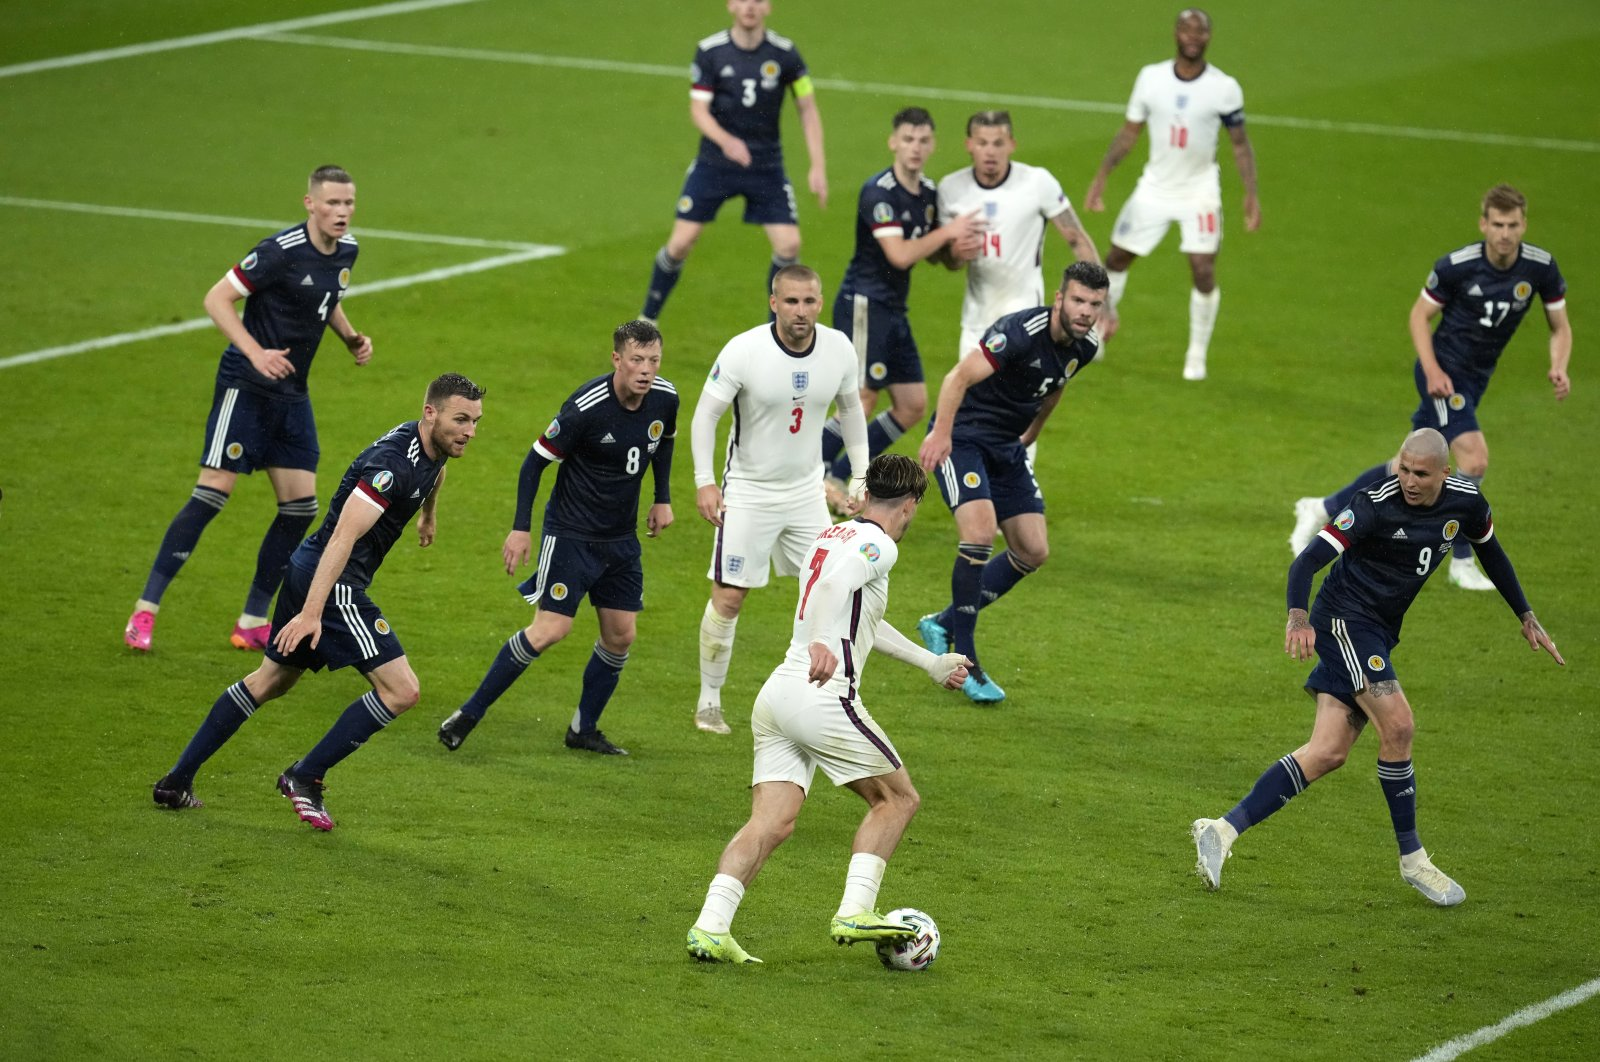 England's Jack Grealish (C foreground) controls the ball during the Euro 2020 soccer championship group D match between England and Scotland, at Wembley Stadium, in London, England, June 18, 2021. (AP Photo)